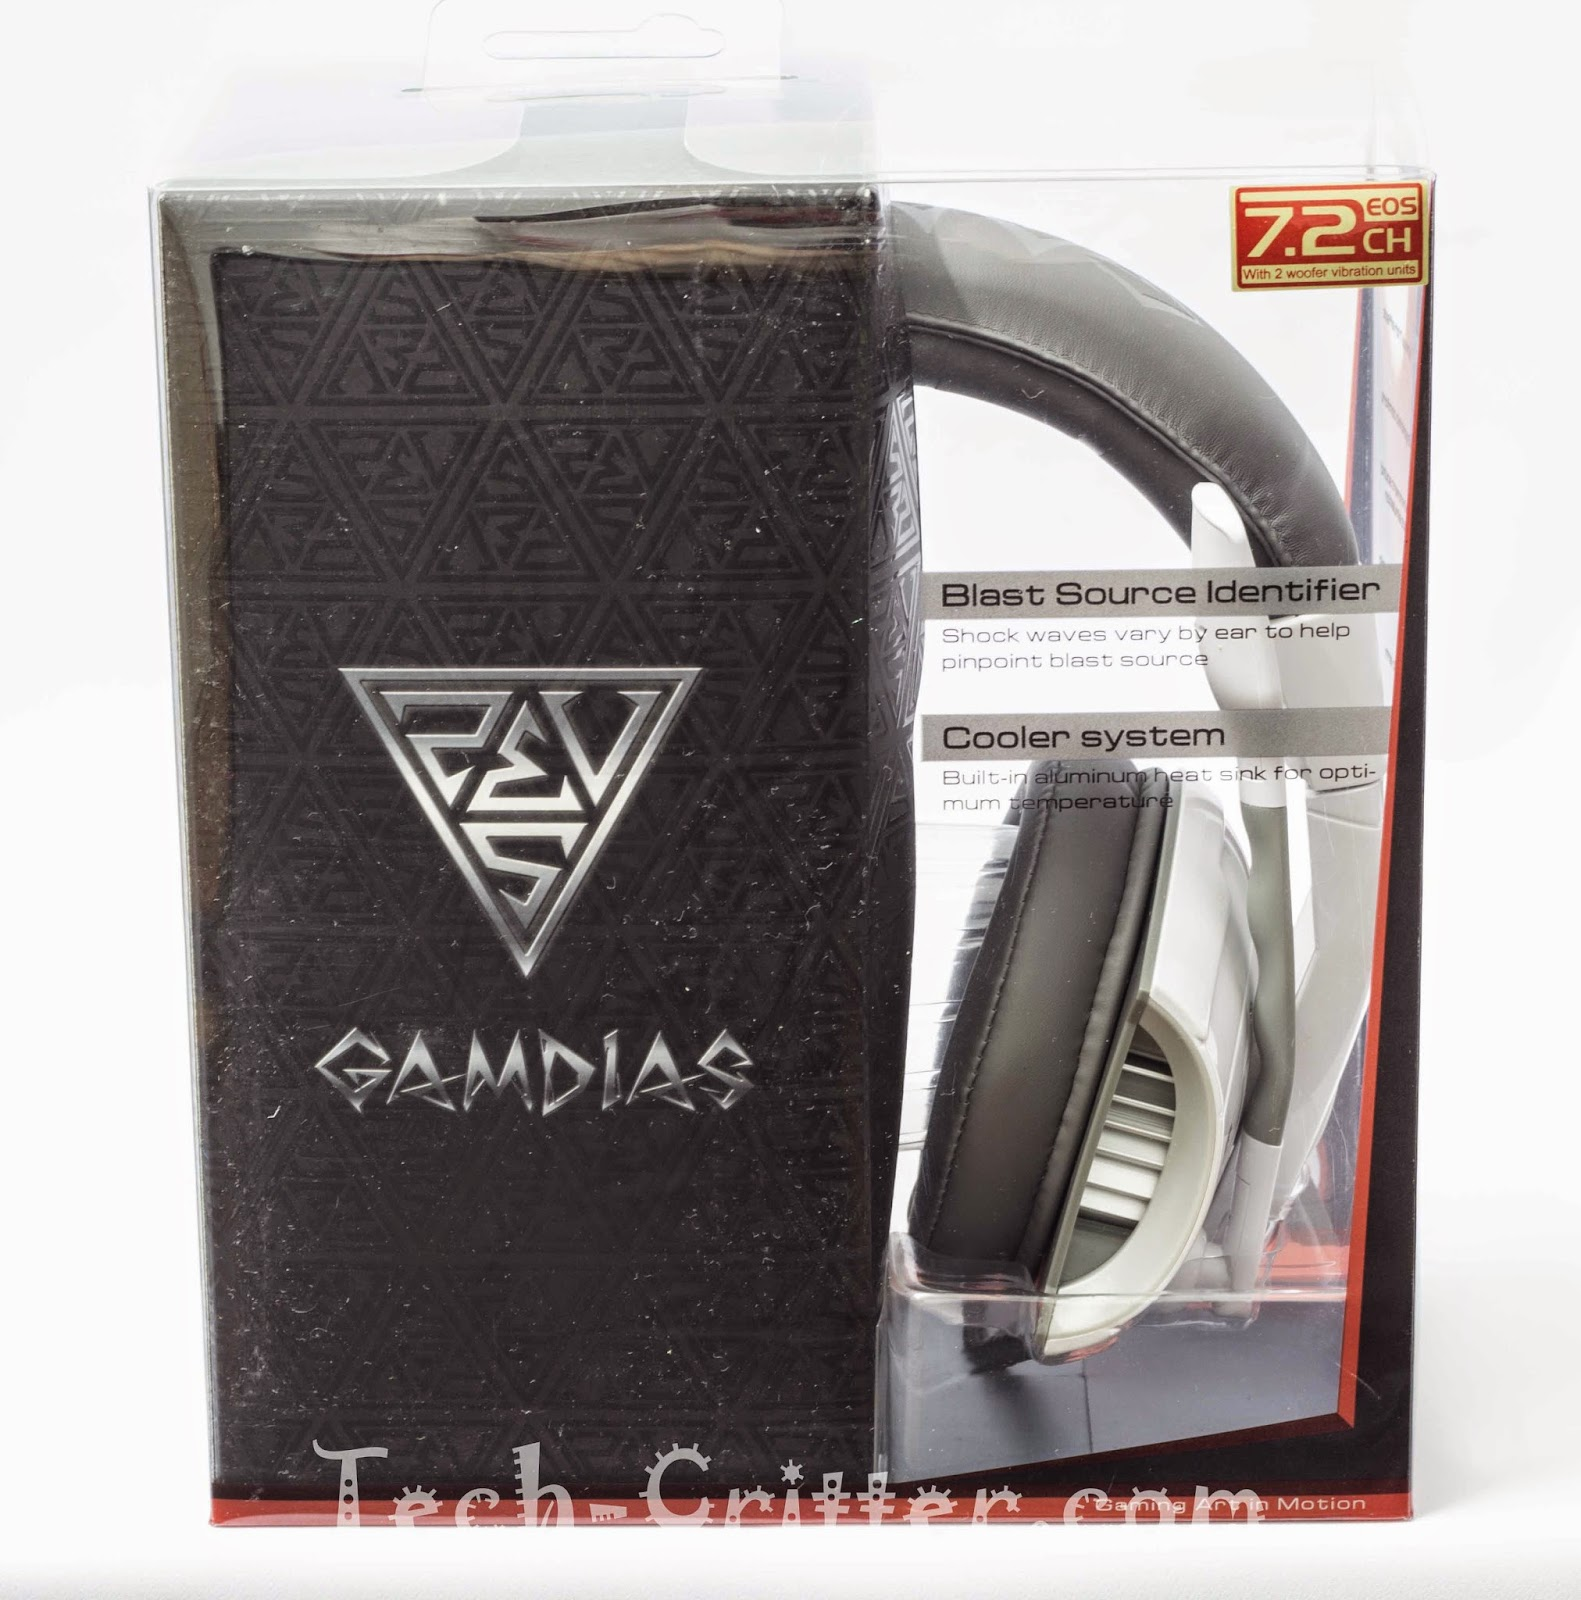 Unboxing & Review: Gamdias Hephaestus Gaming Headset 61